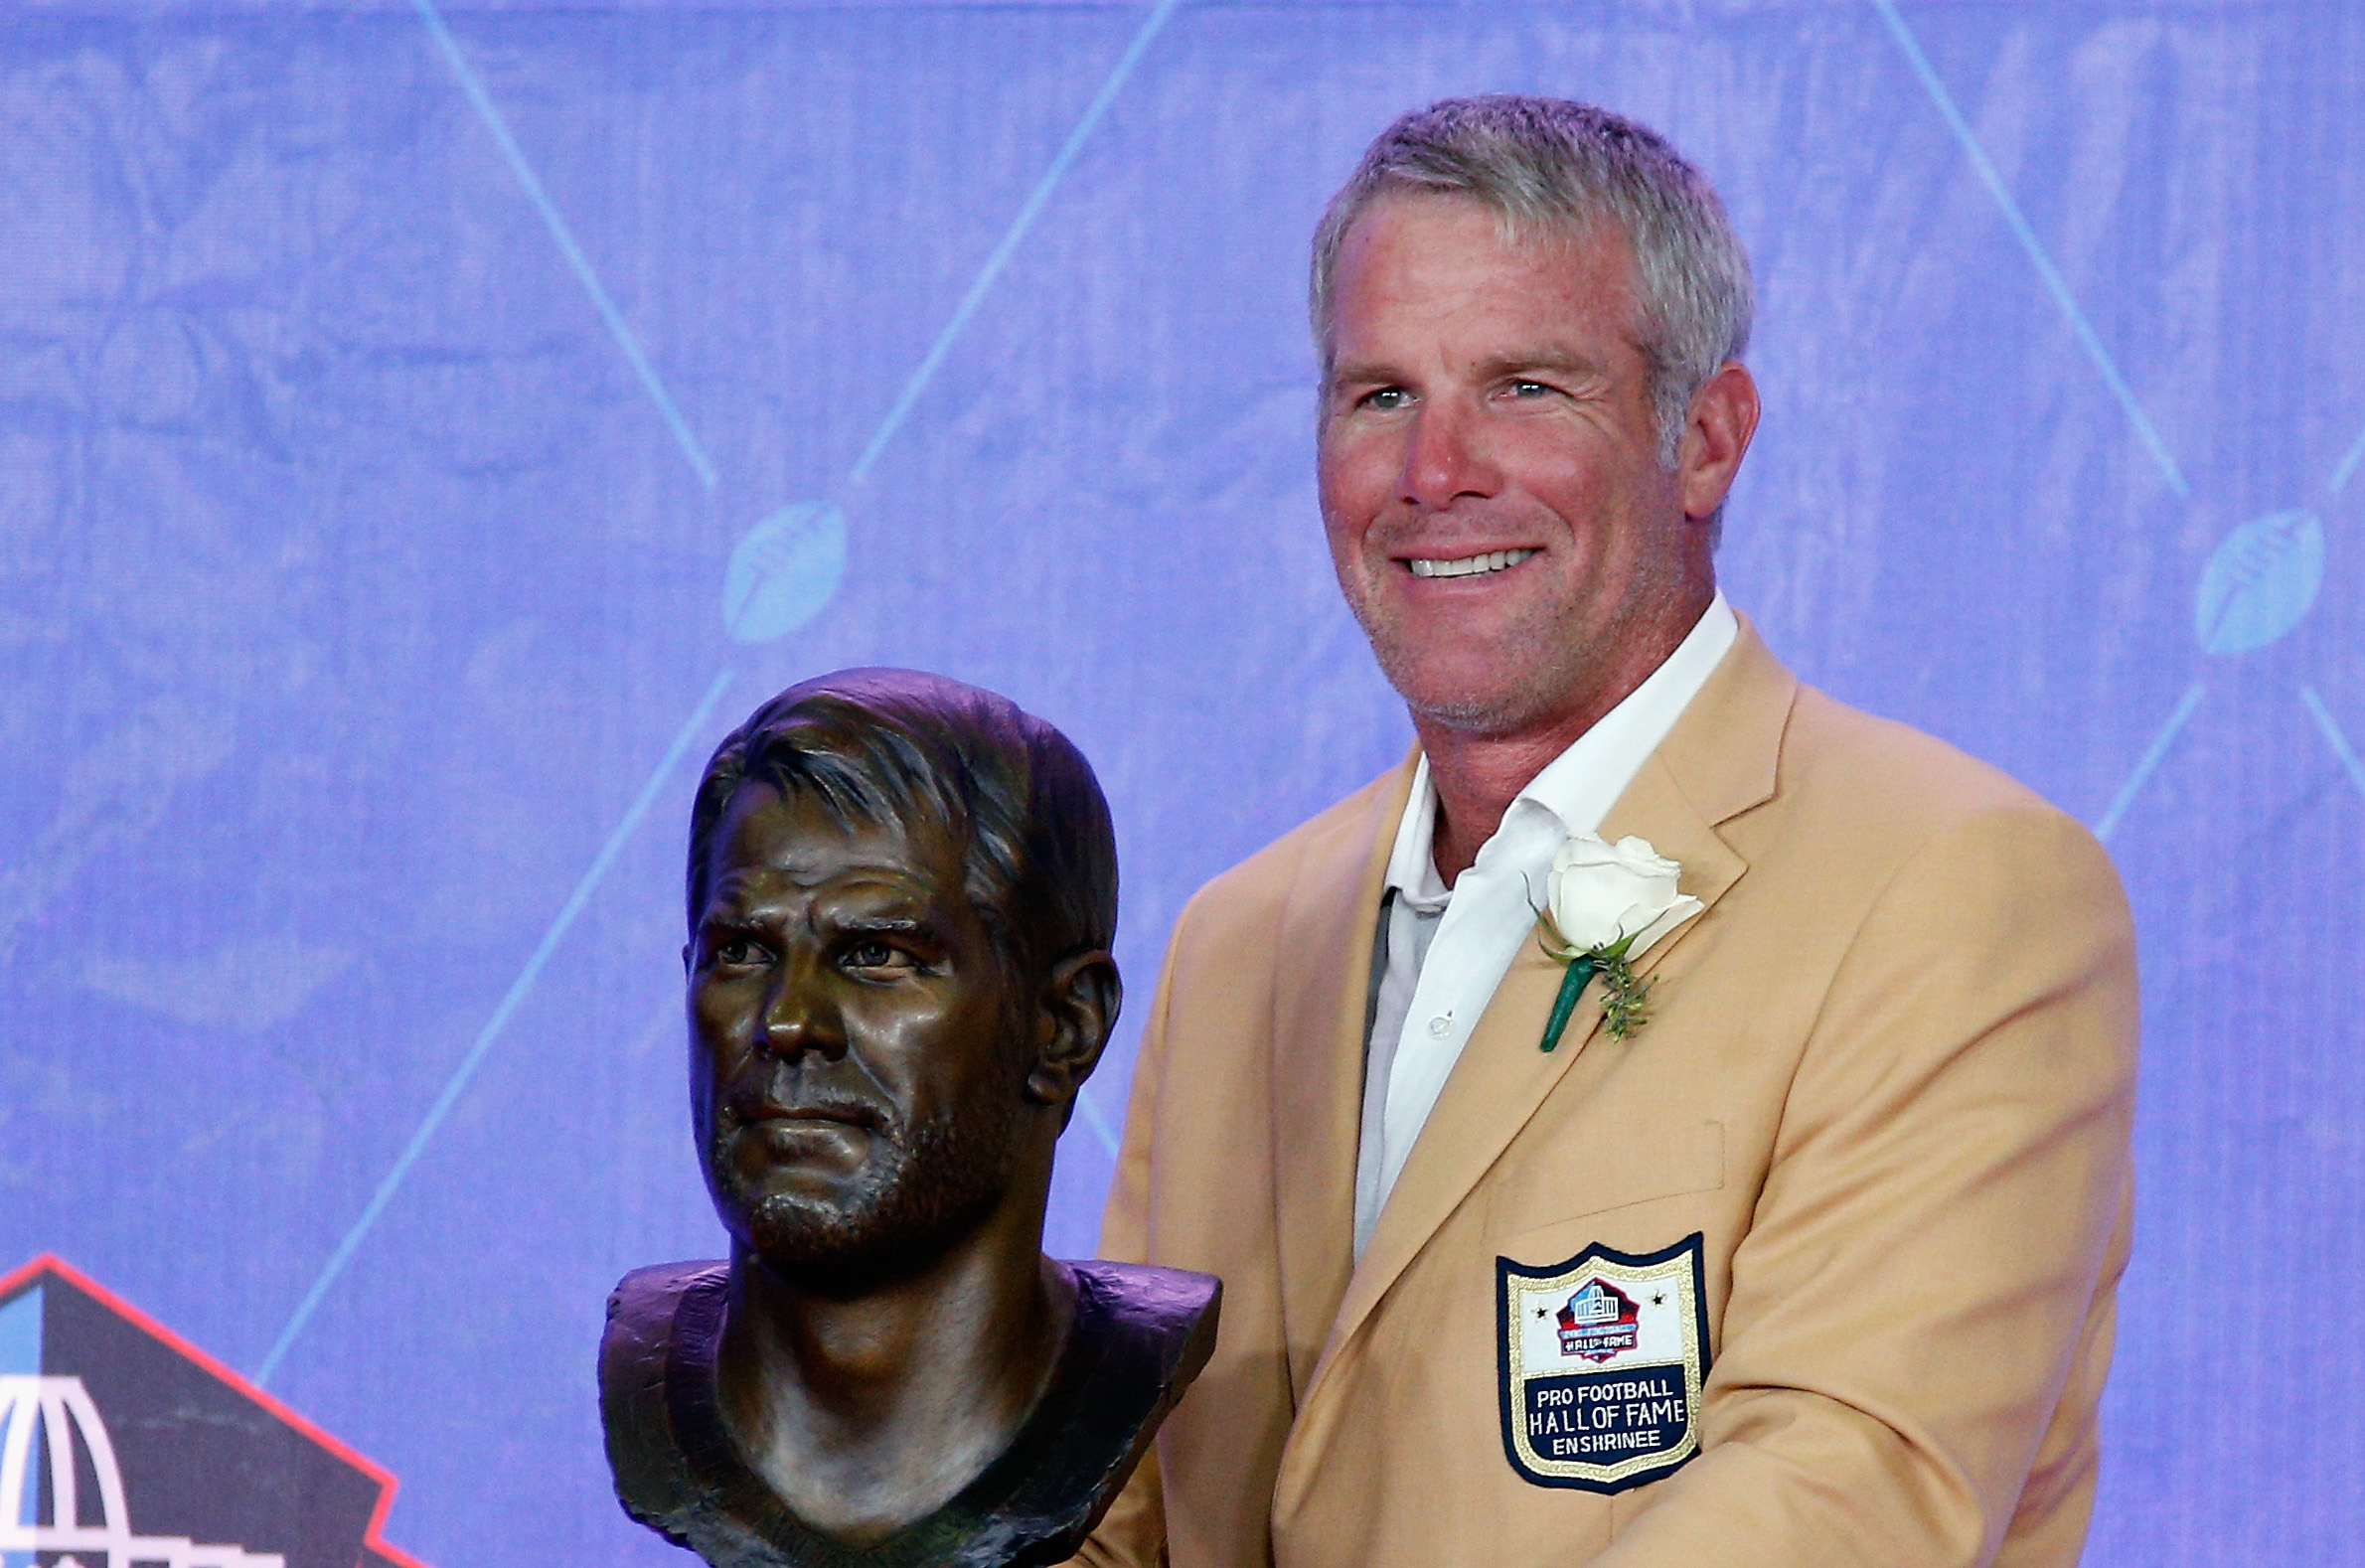 586858684-nfl-hall-of-fame-enshrinement.jpg